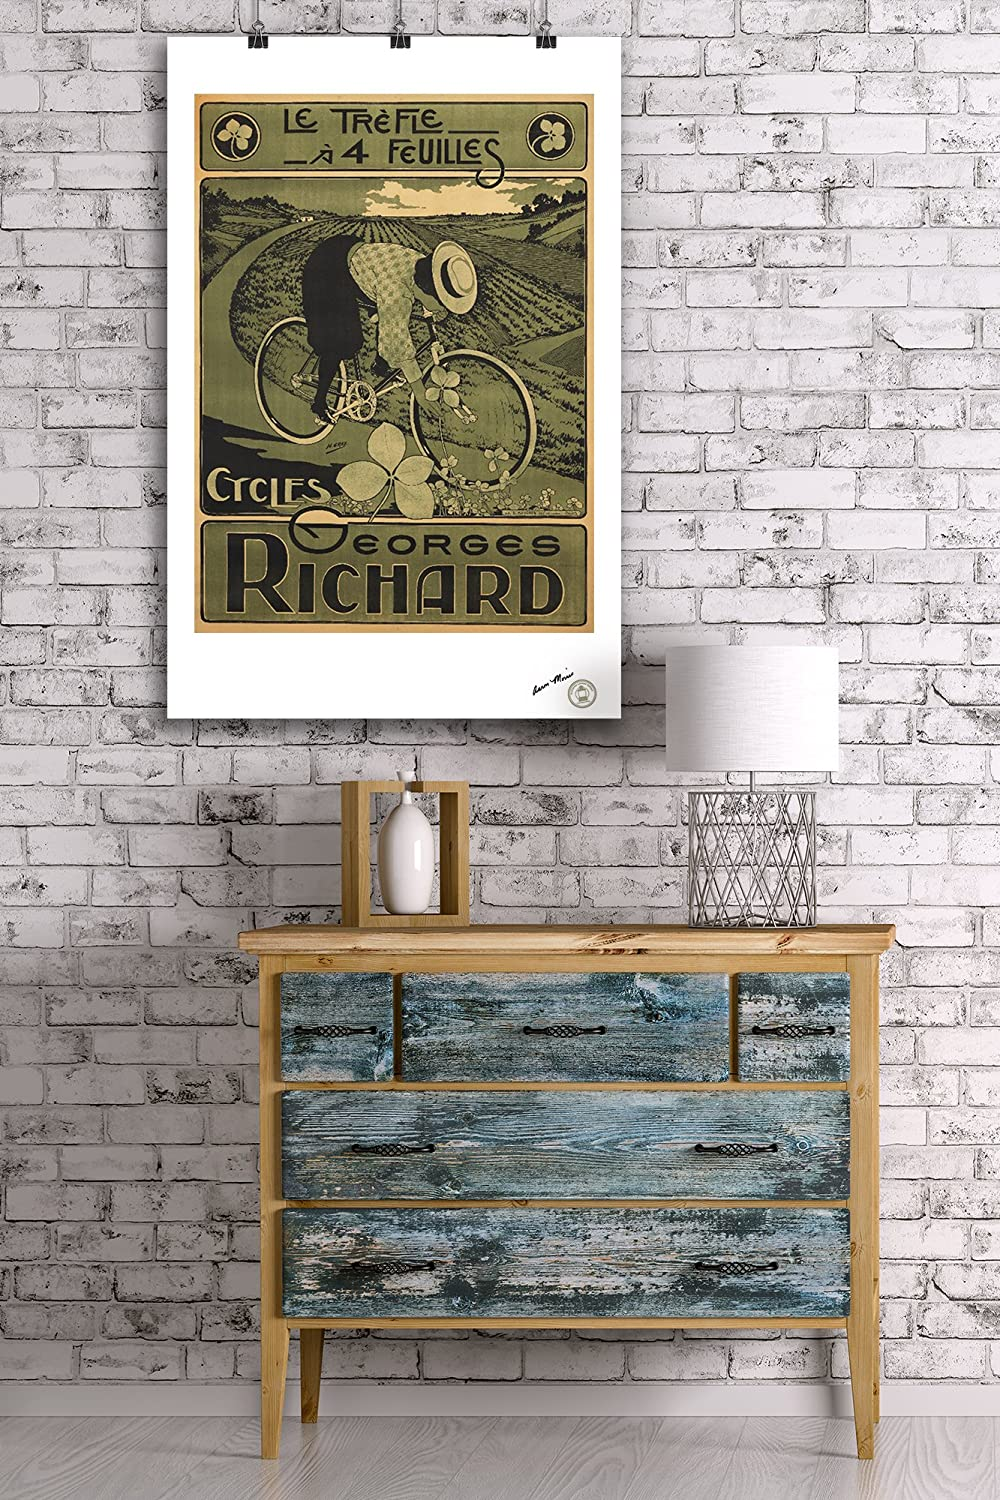 France c 24x36 Giclee Gallery Print, Wall Decor Travel Poster artist: Gray 1895 Cycles Georges Richard Vintage Poster